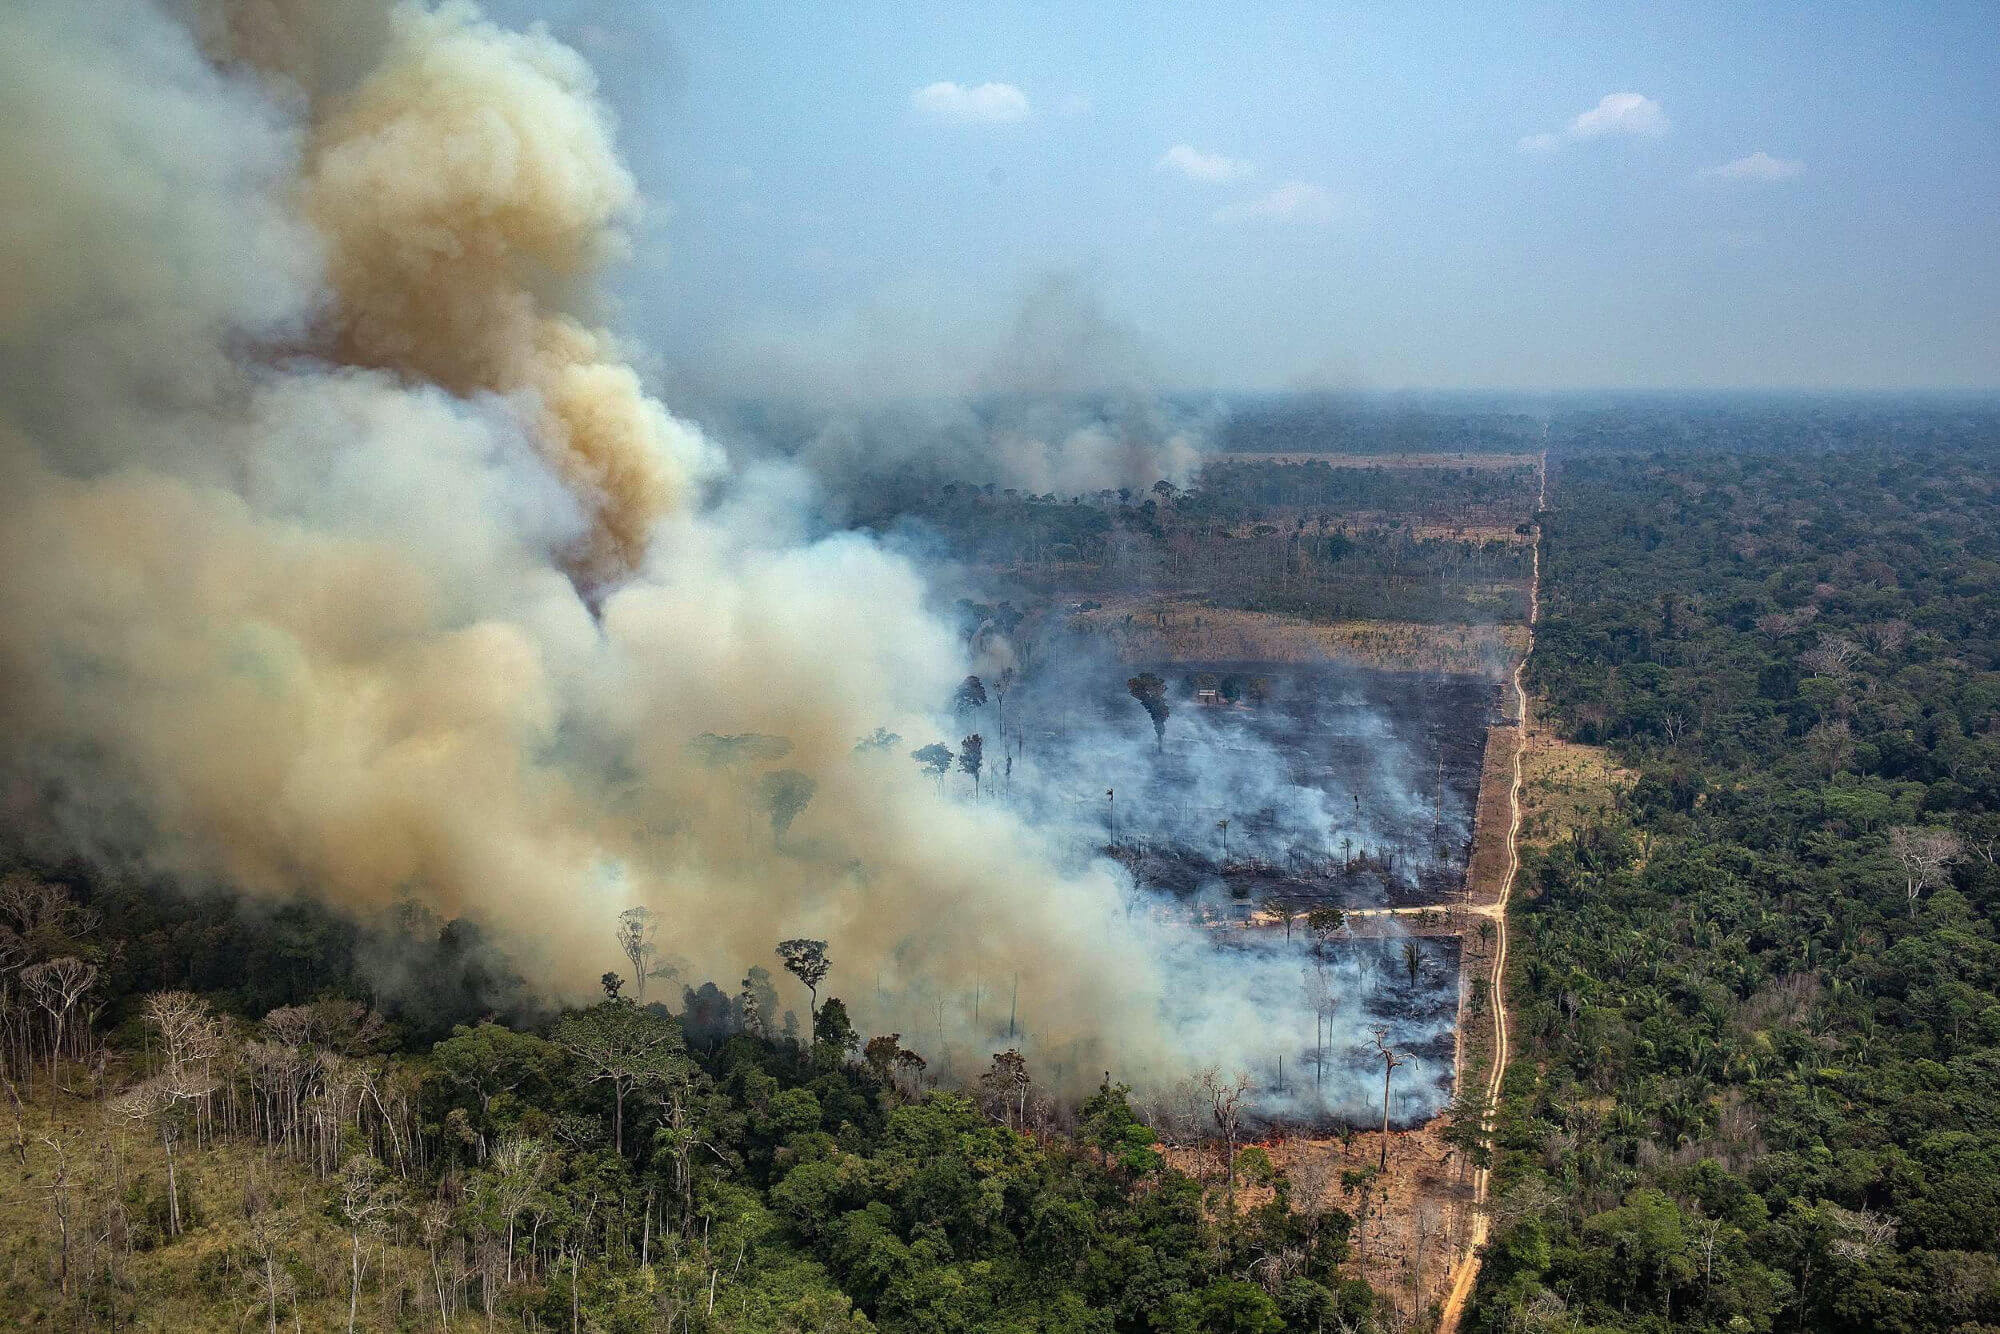 'Feedback loop' kills off species as Amazon fires rage